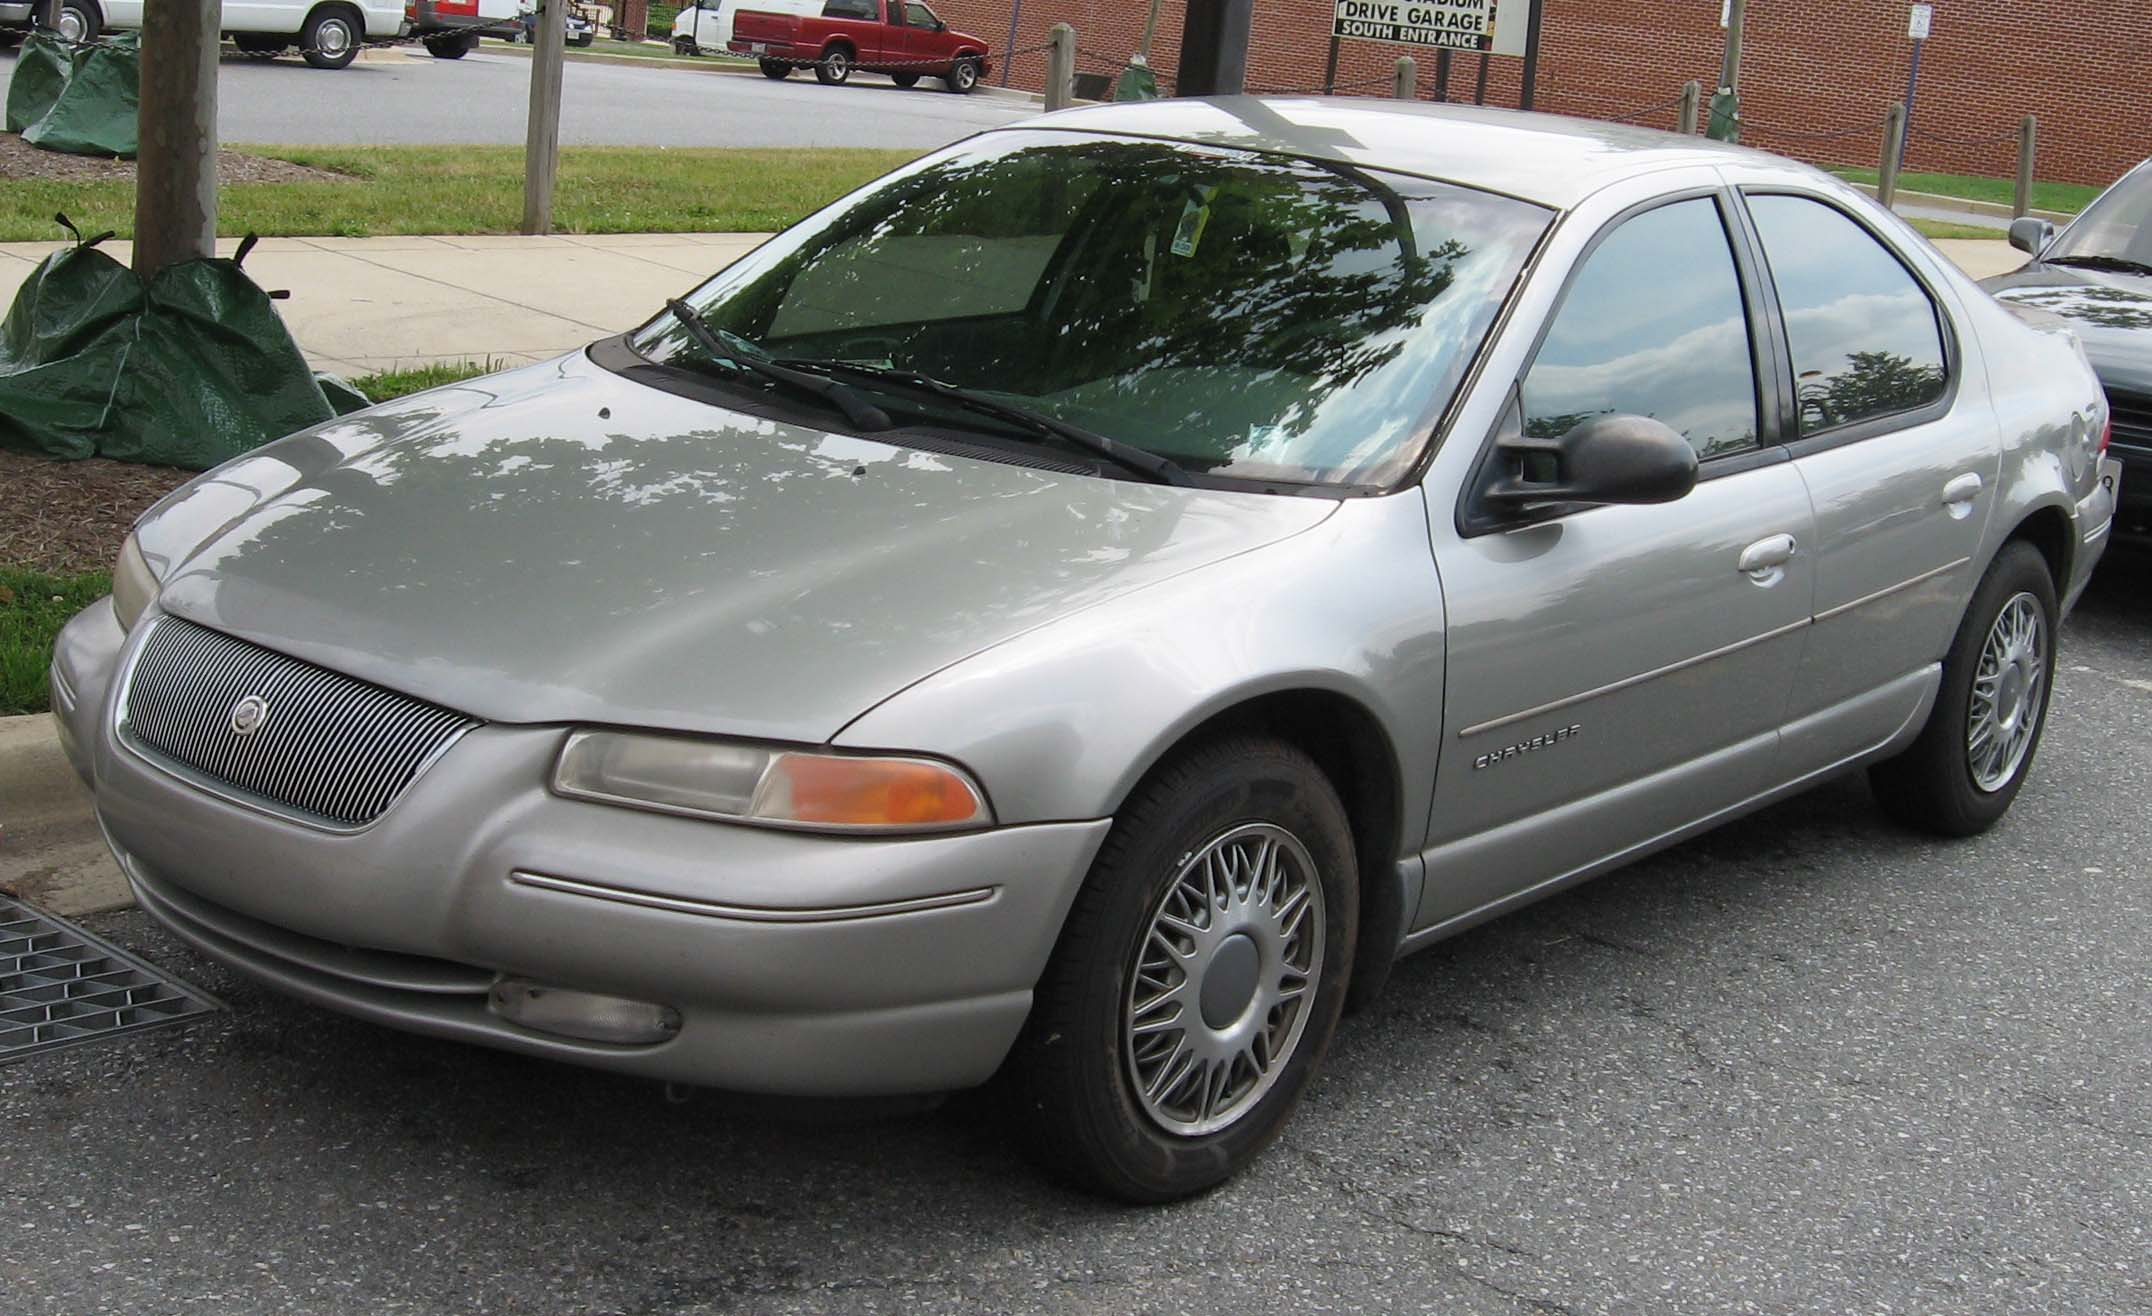 1998 Chrysler Cirrus #1